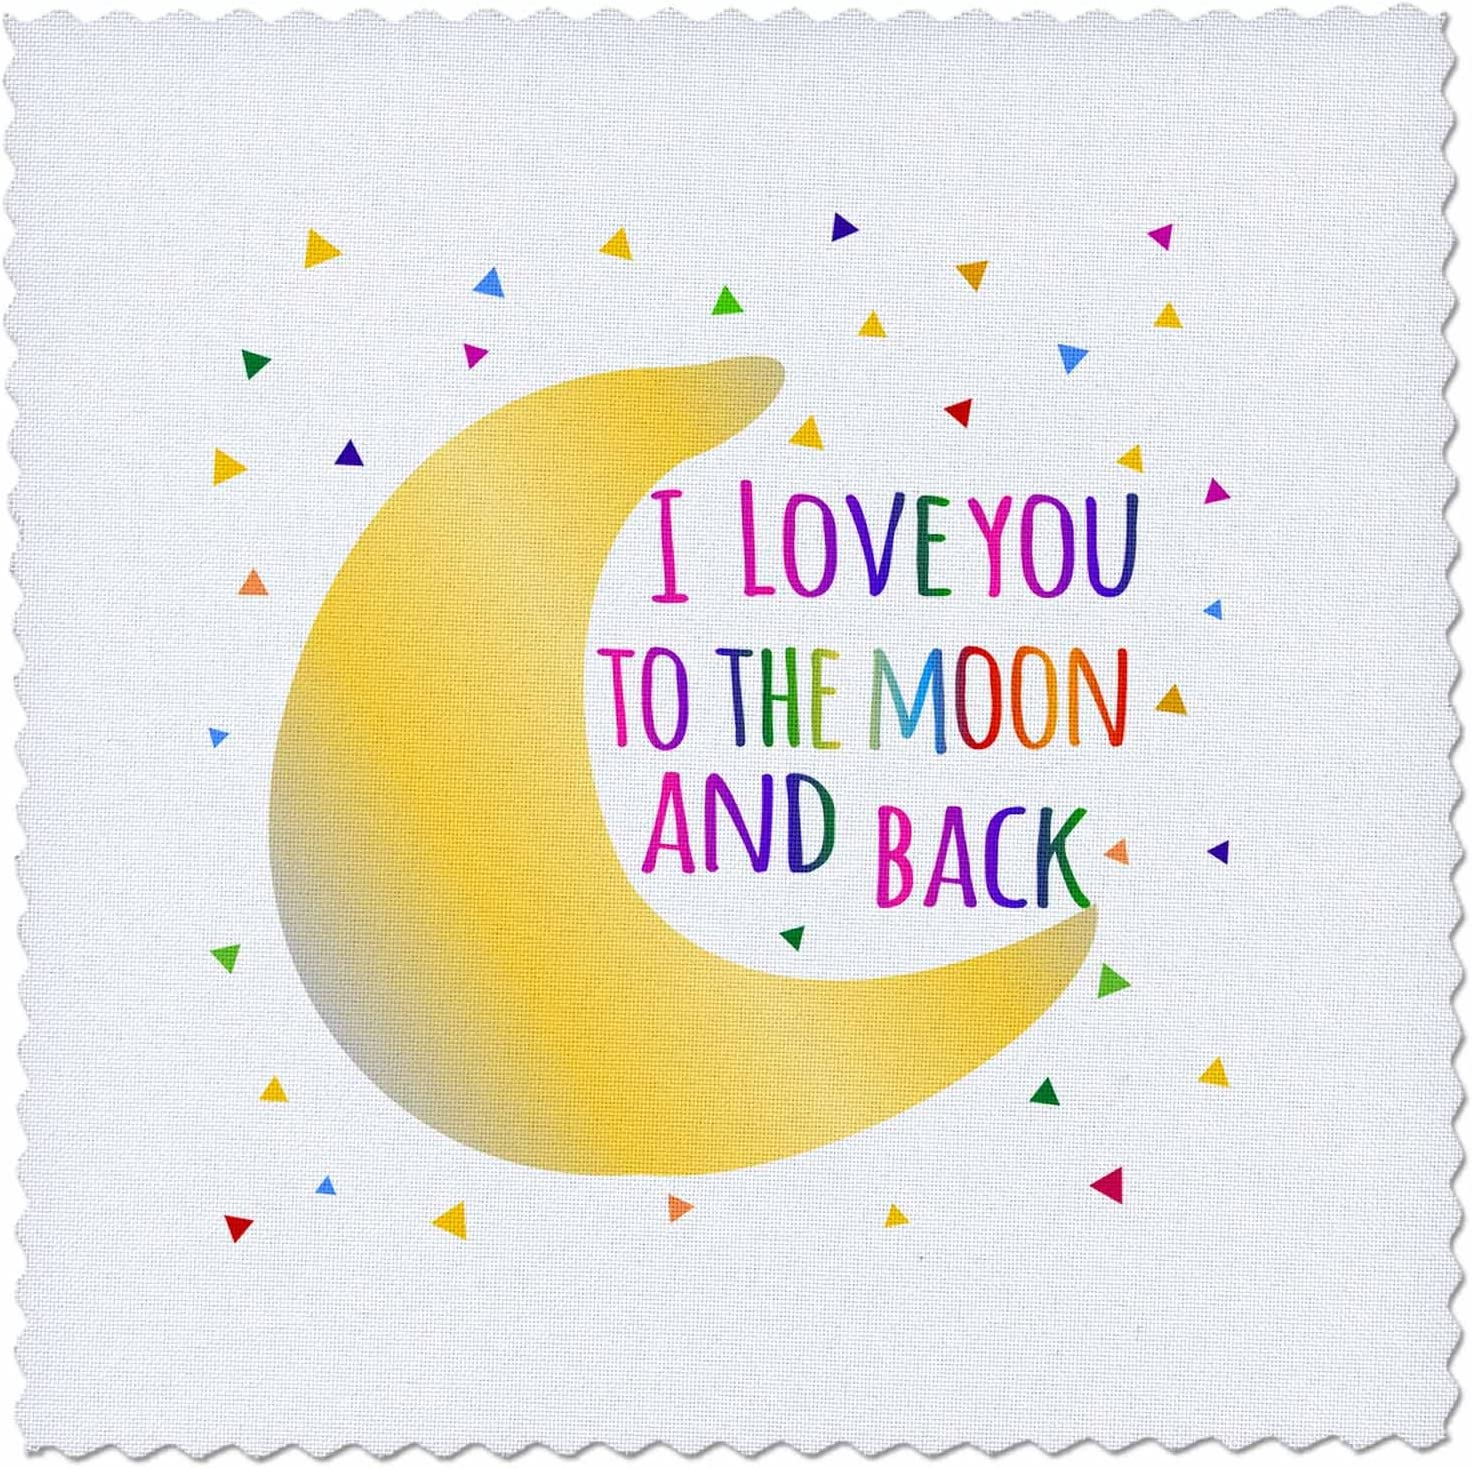 10 by 10-inch qs/_202101/_1 3dRose I love you to the moon and back Quilt Square colorful rainbow text on white